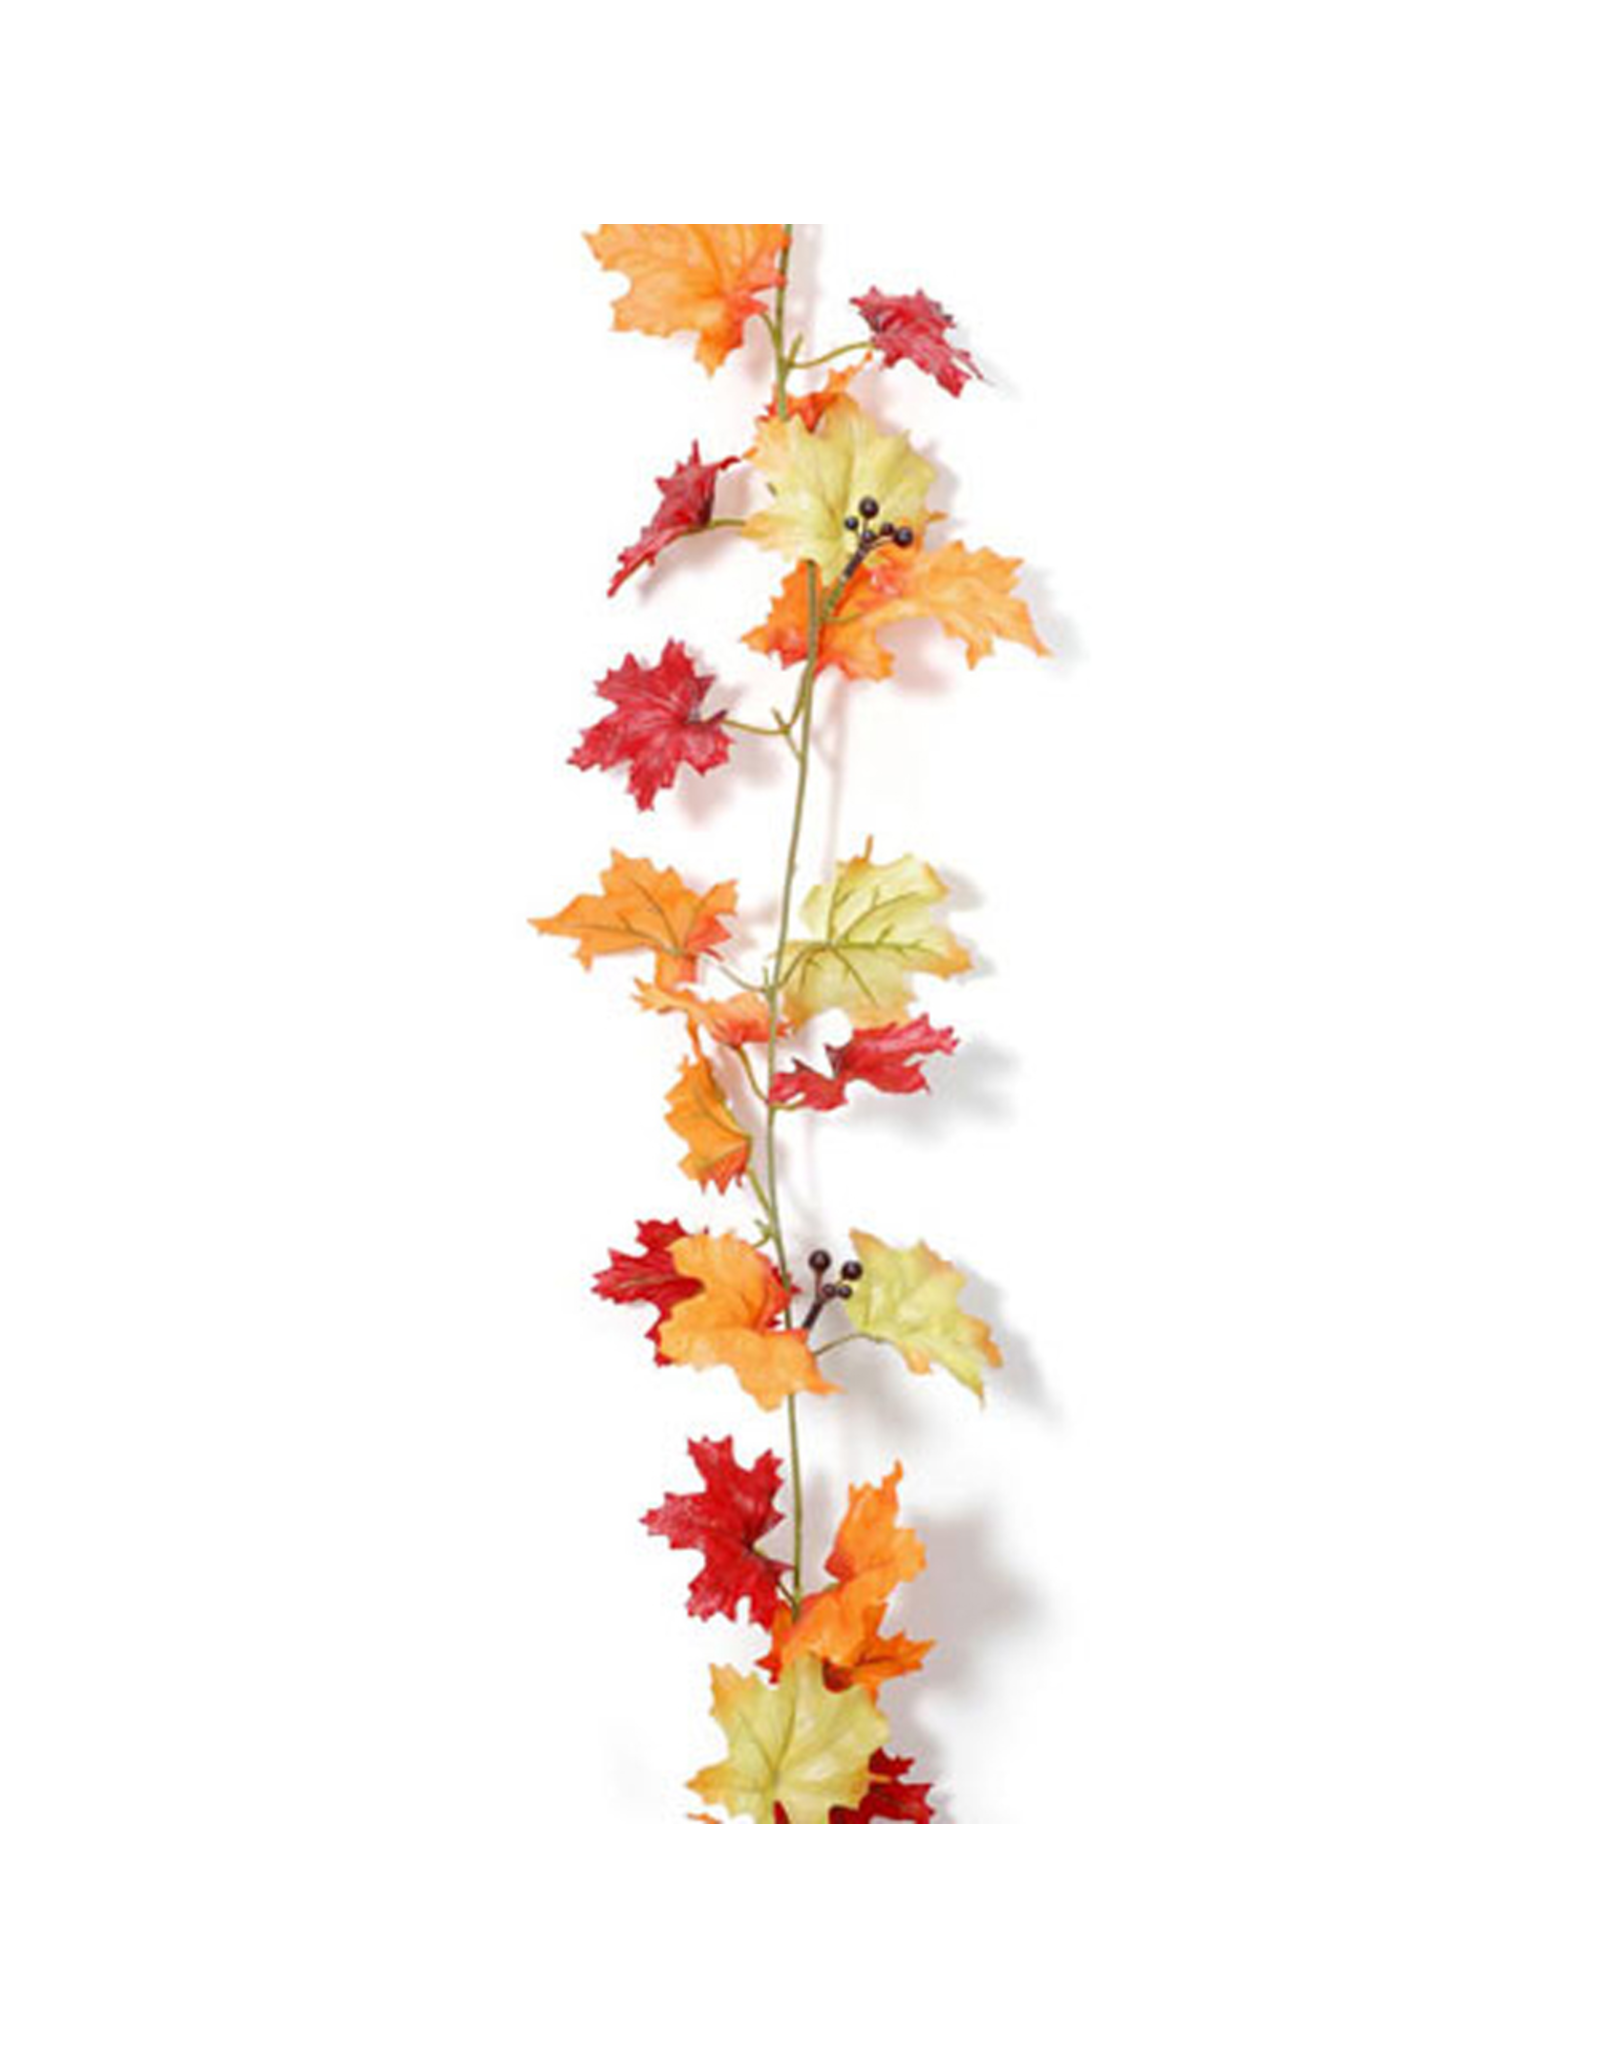 Darice Fall Leaf Garland Maple Leaves W Berries 9 Feet Floral Decor Digs N Gifts